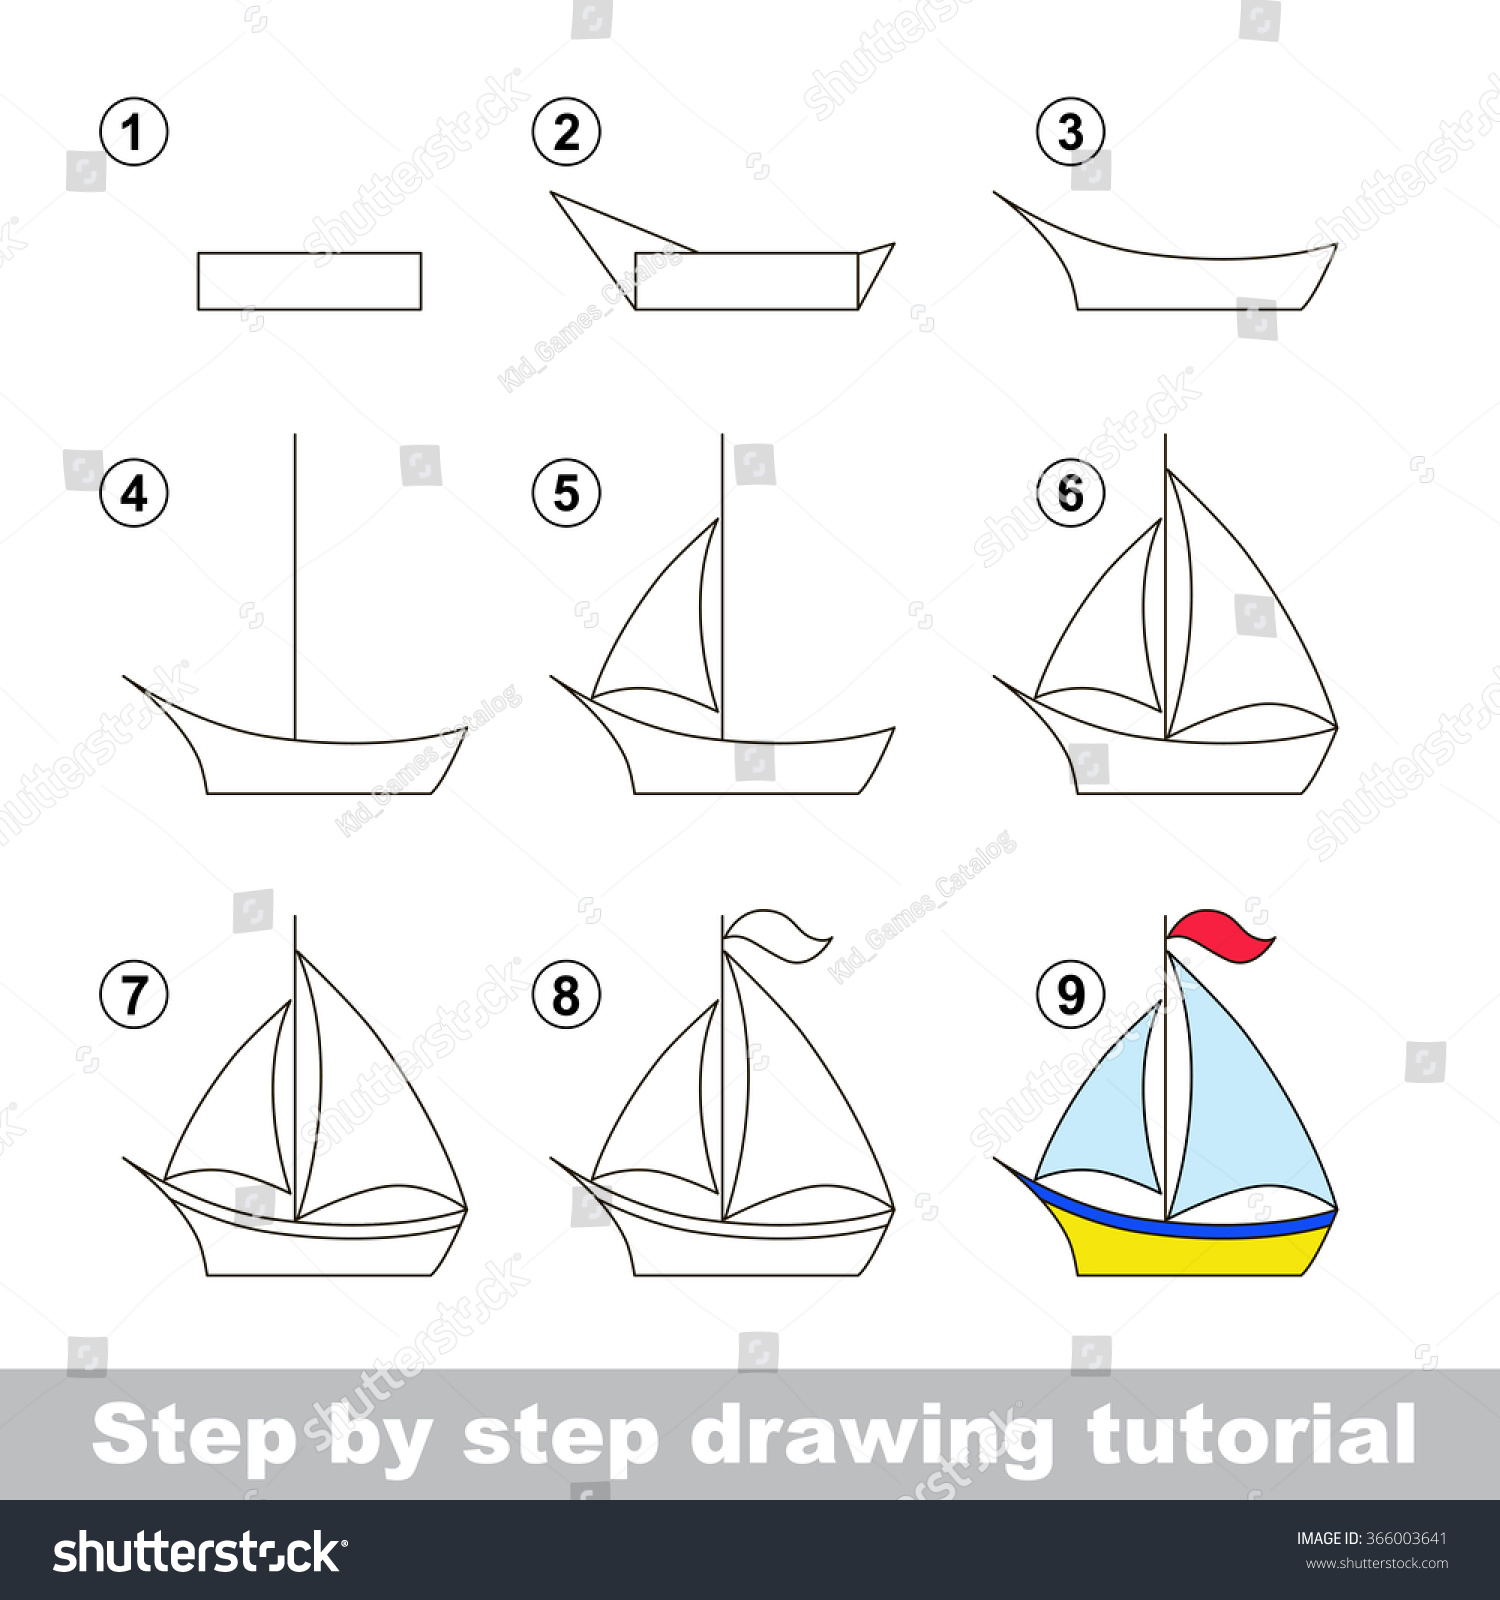 drawing tutorial how to draw a boat